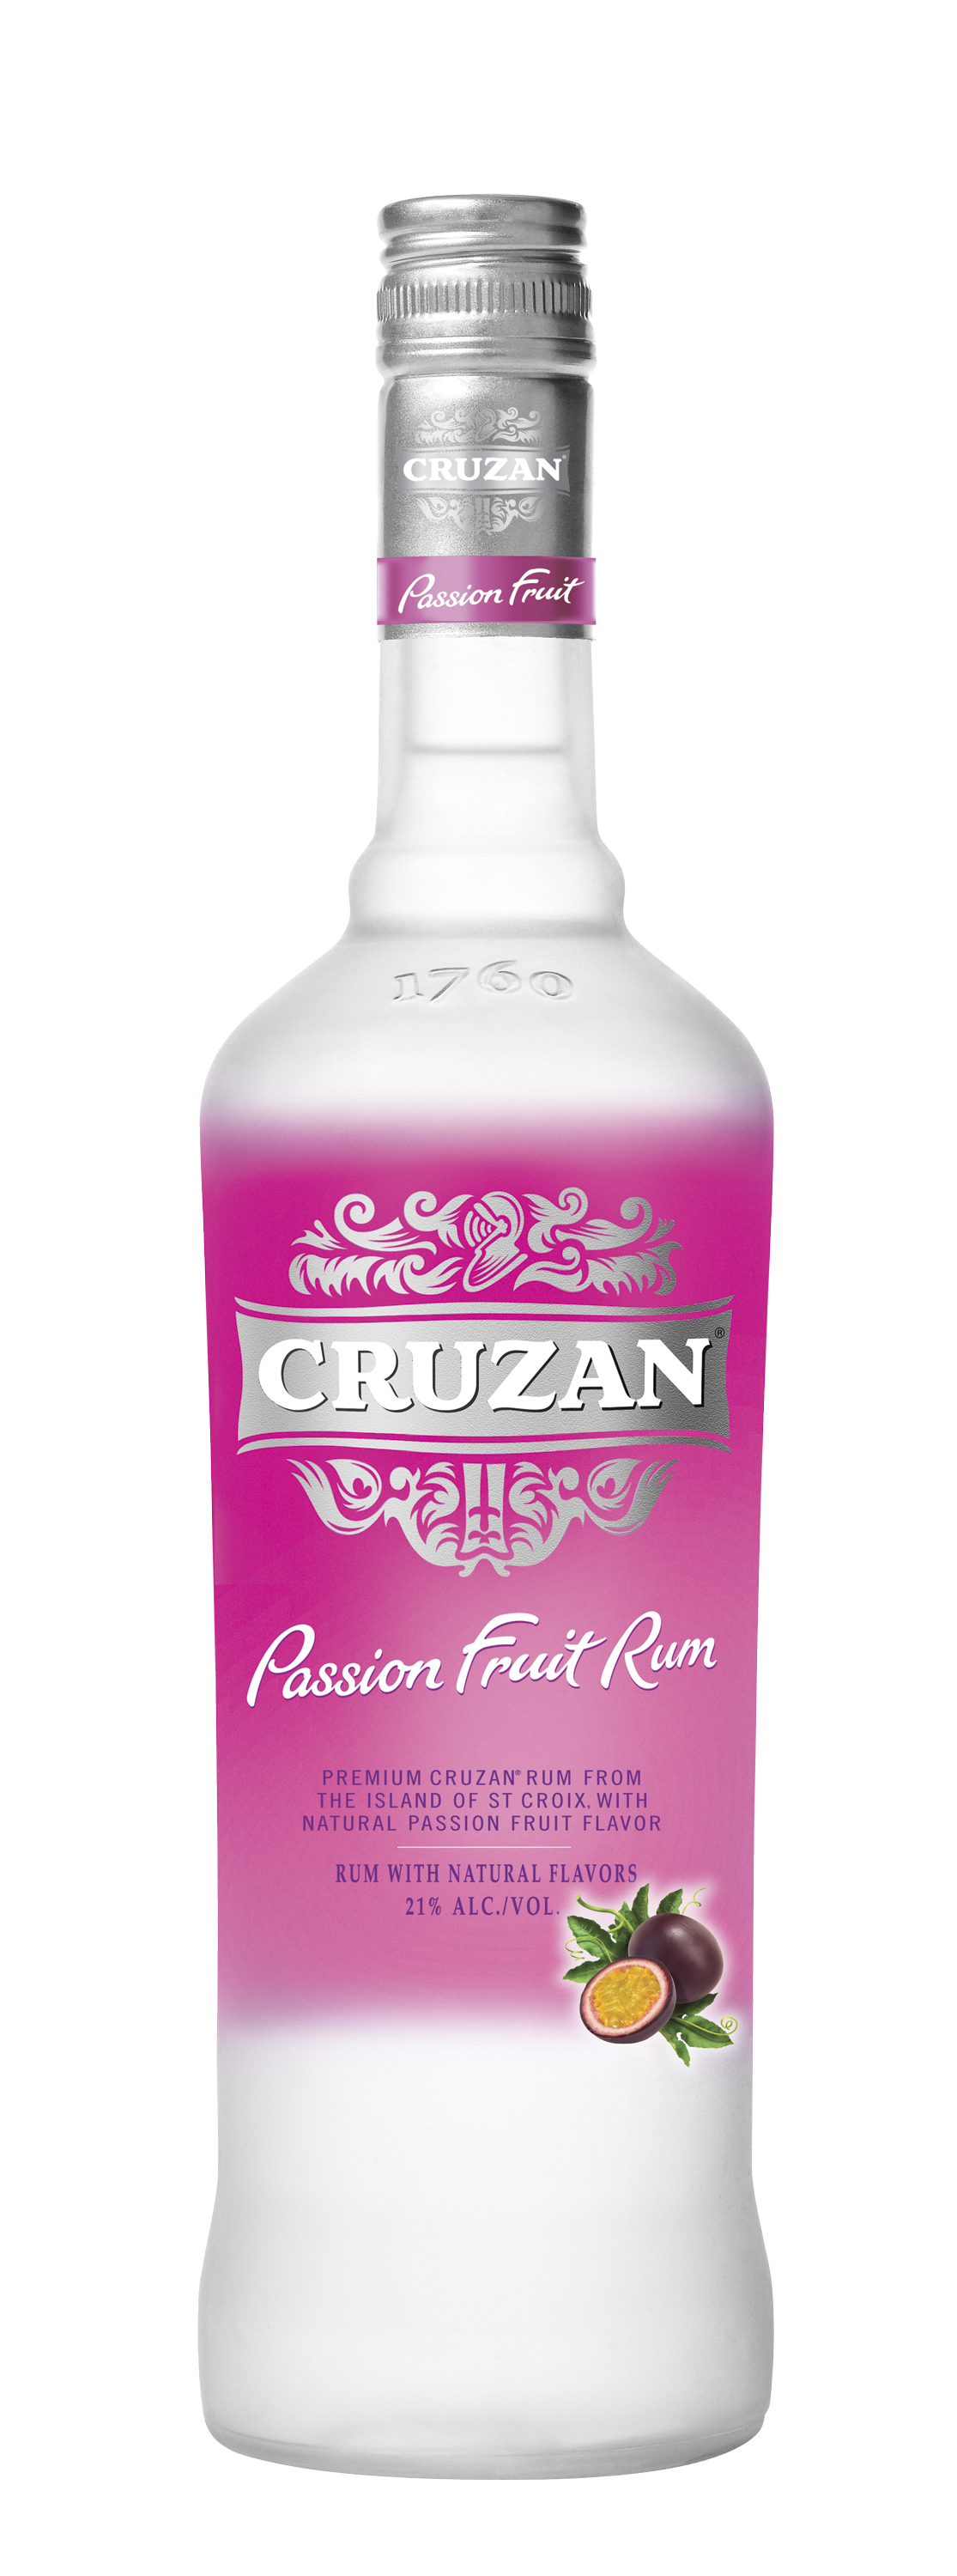 Cruzan(r) Passion Fruit Rum Bottle